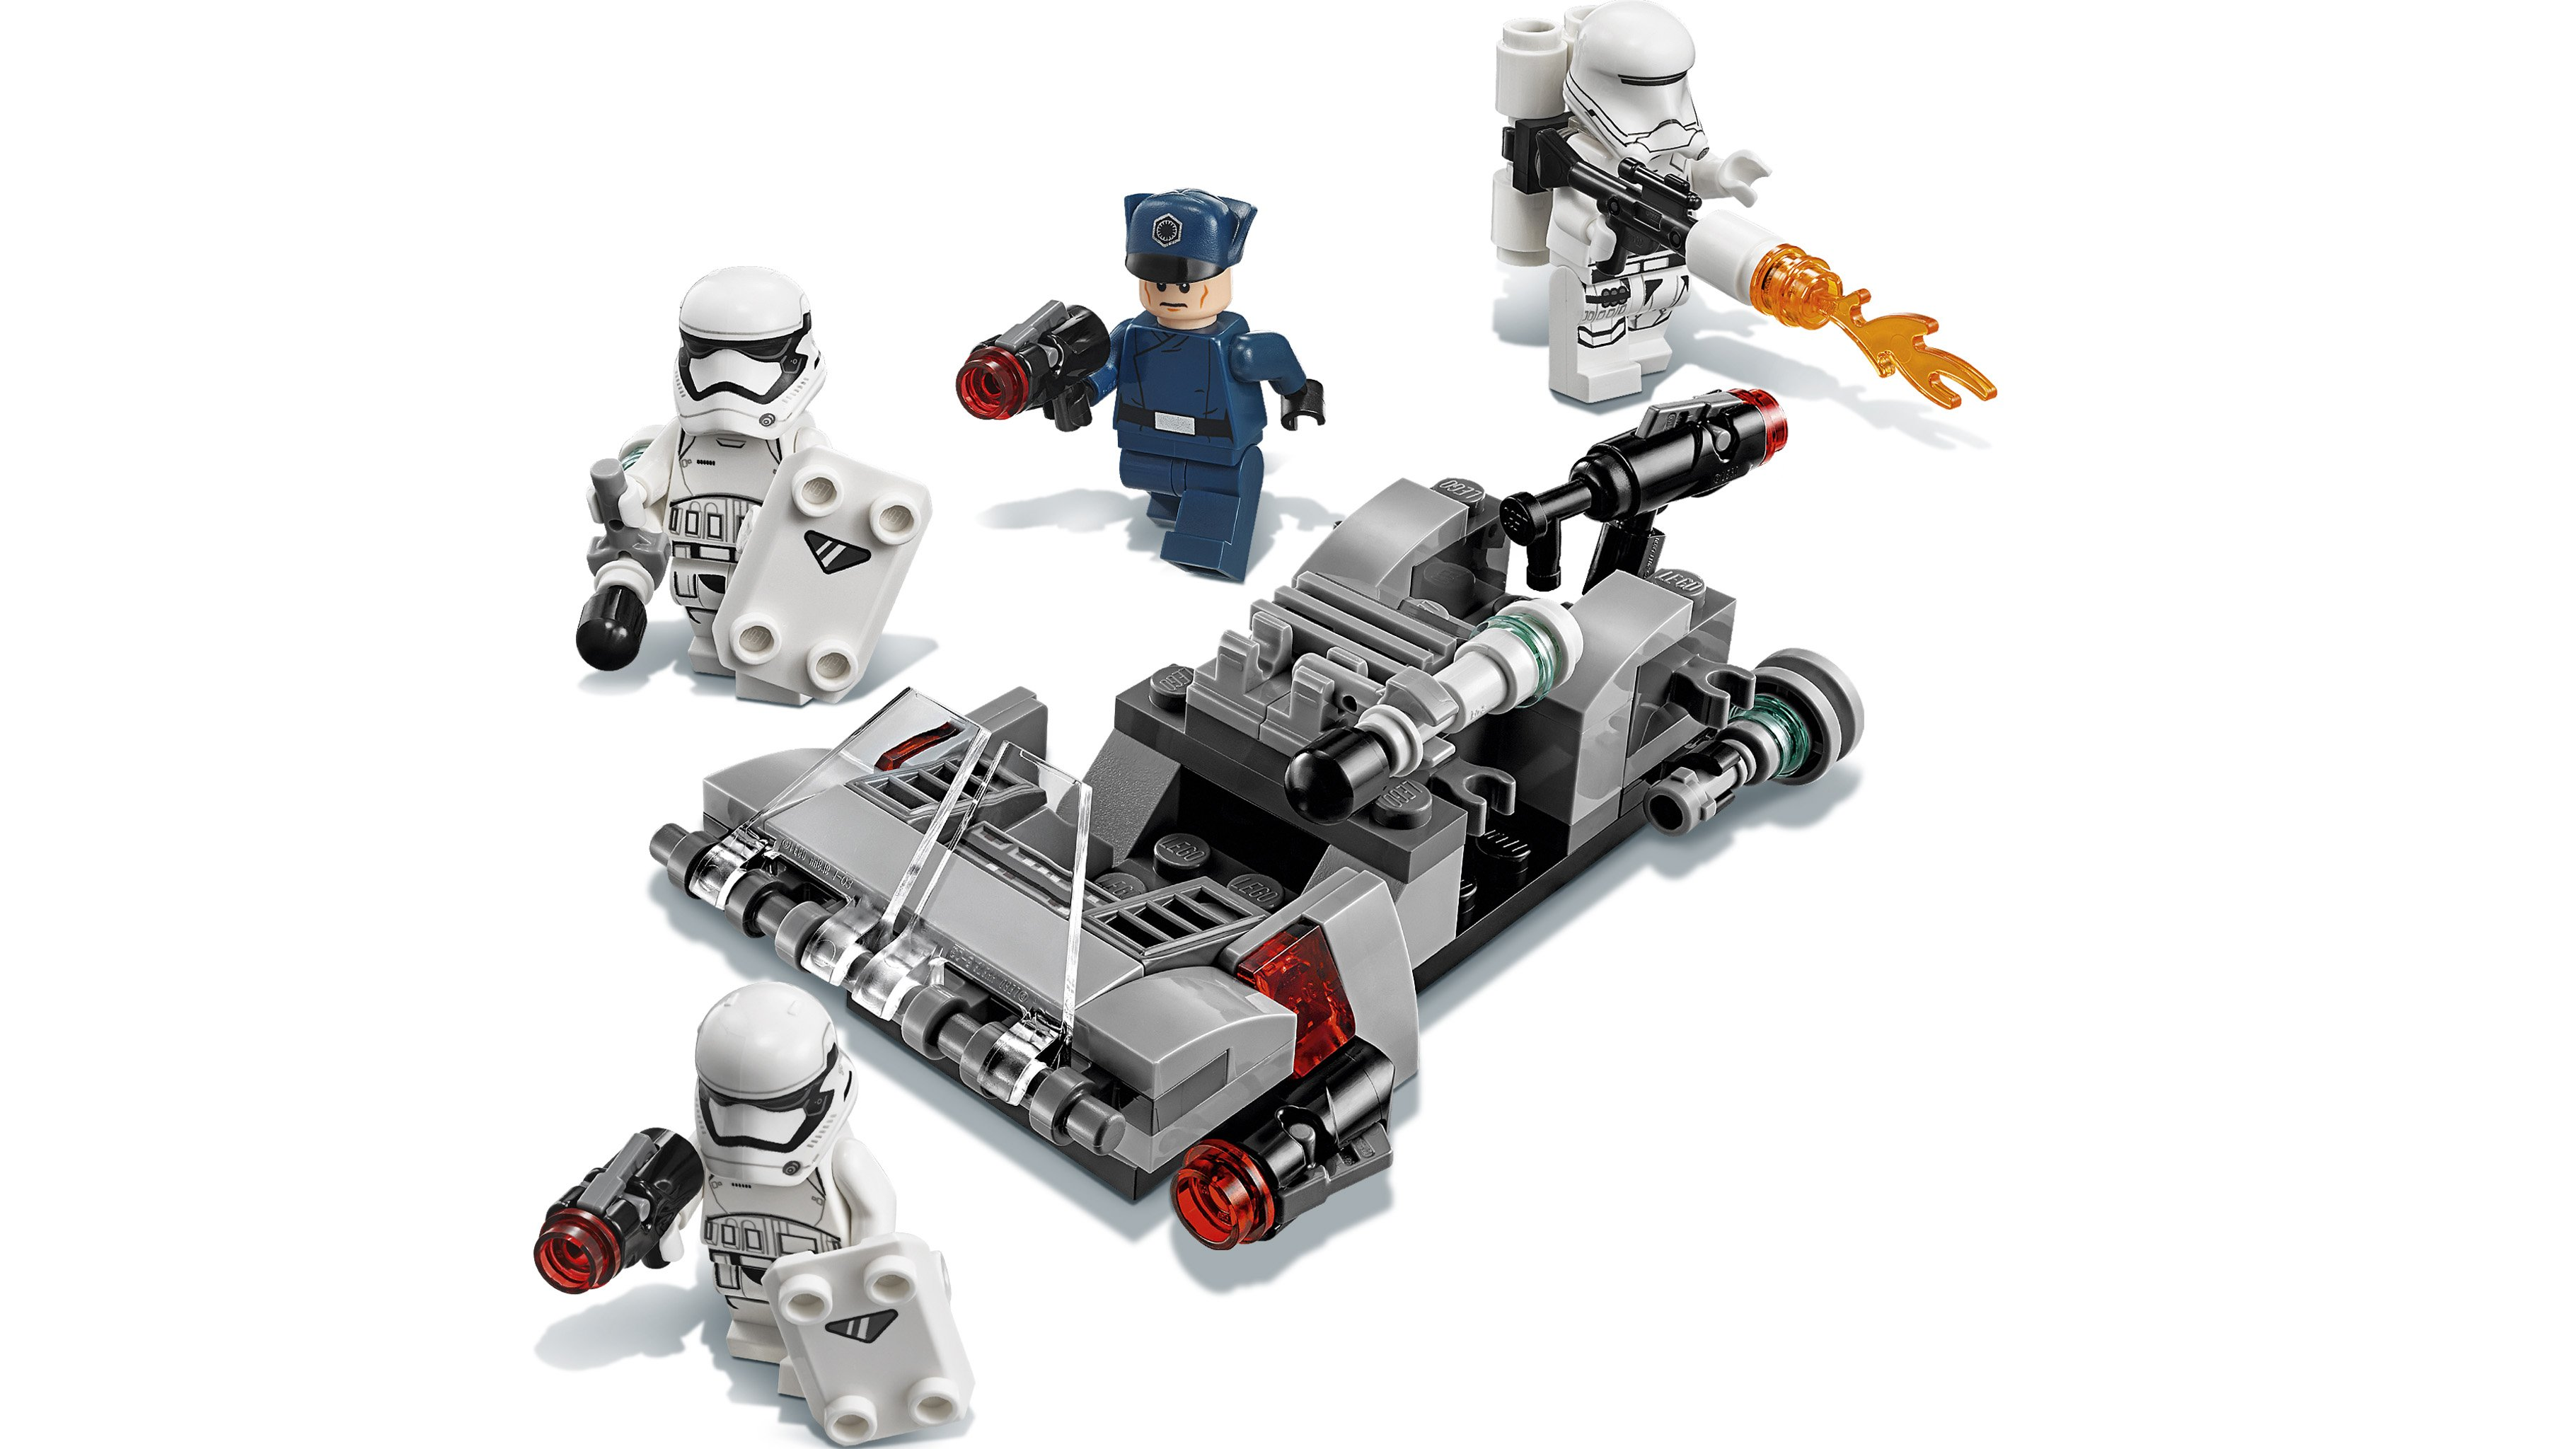 LEGO Star Wars First Order Stormtrooper with shield NEW from 75166